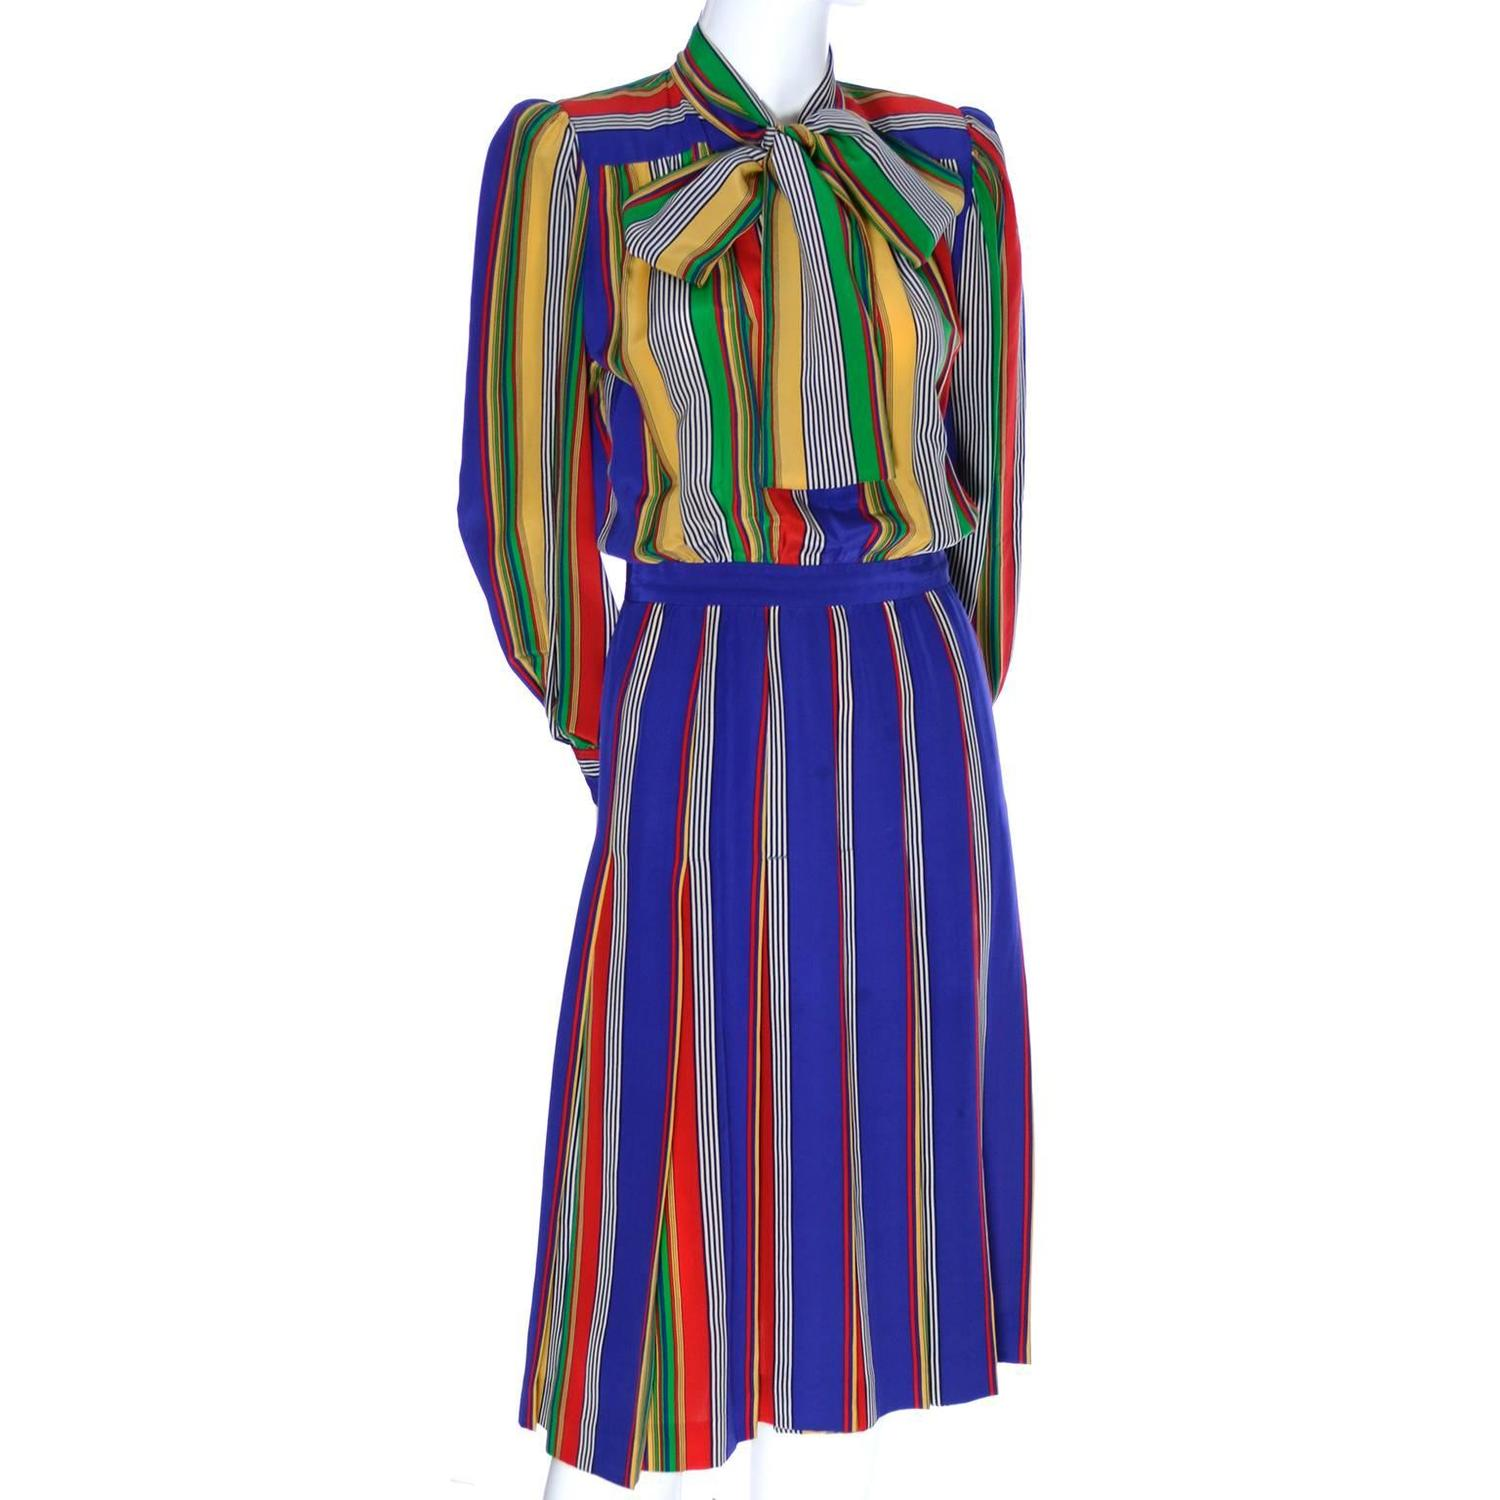 Vintage Yves Saint Laurent Day Dresses - 200 For Sale at 1stdibs